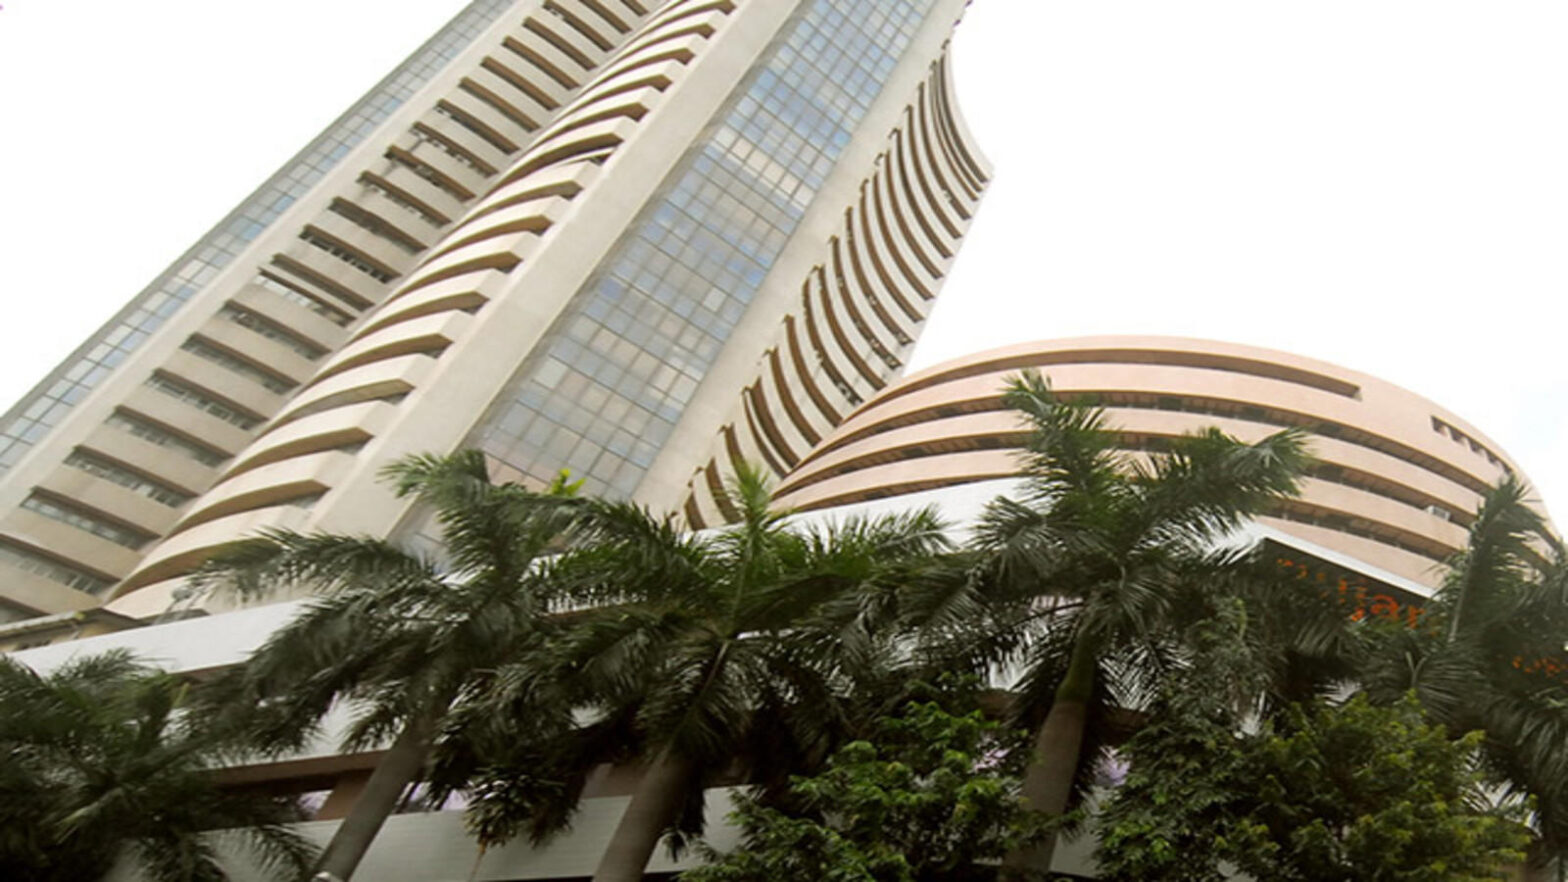 Sensex, Nifty end flat as energy gains offset losses in financials